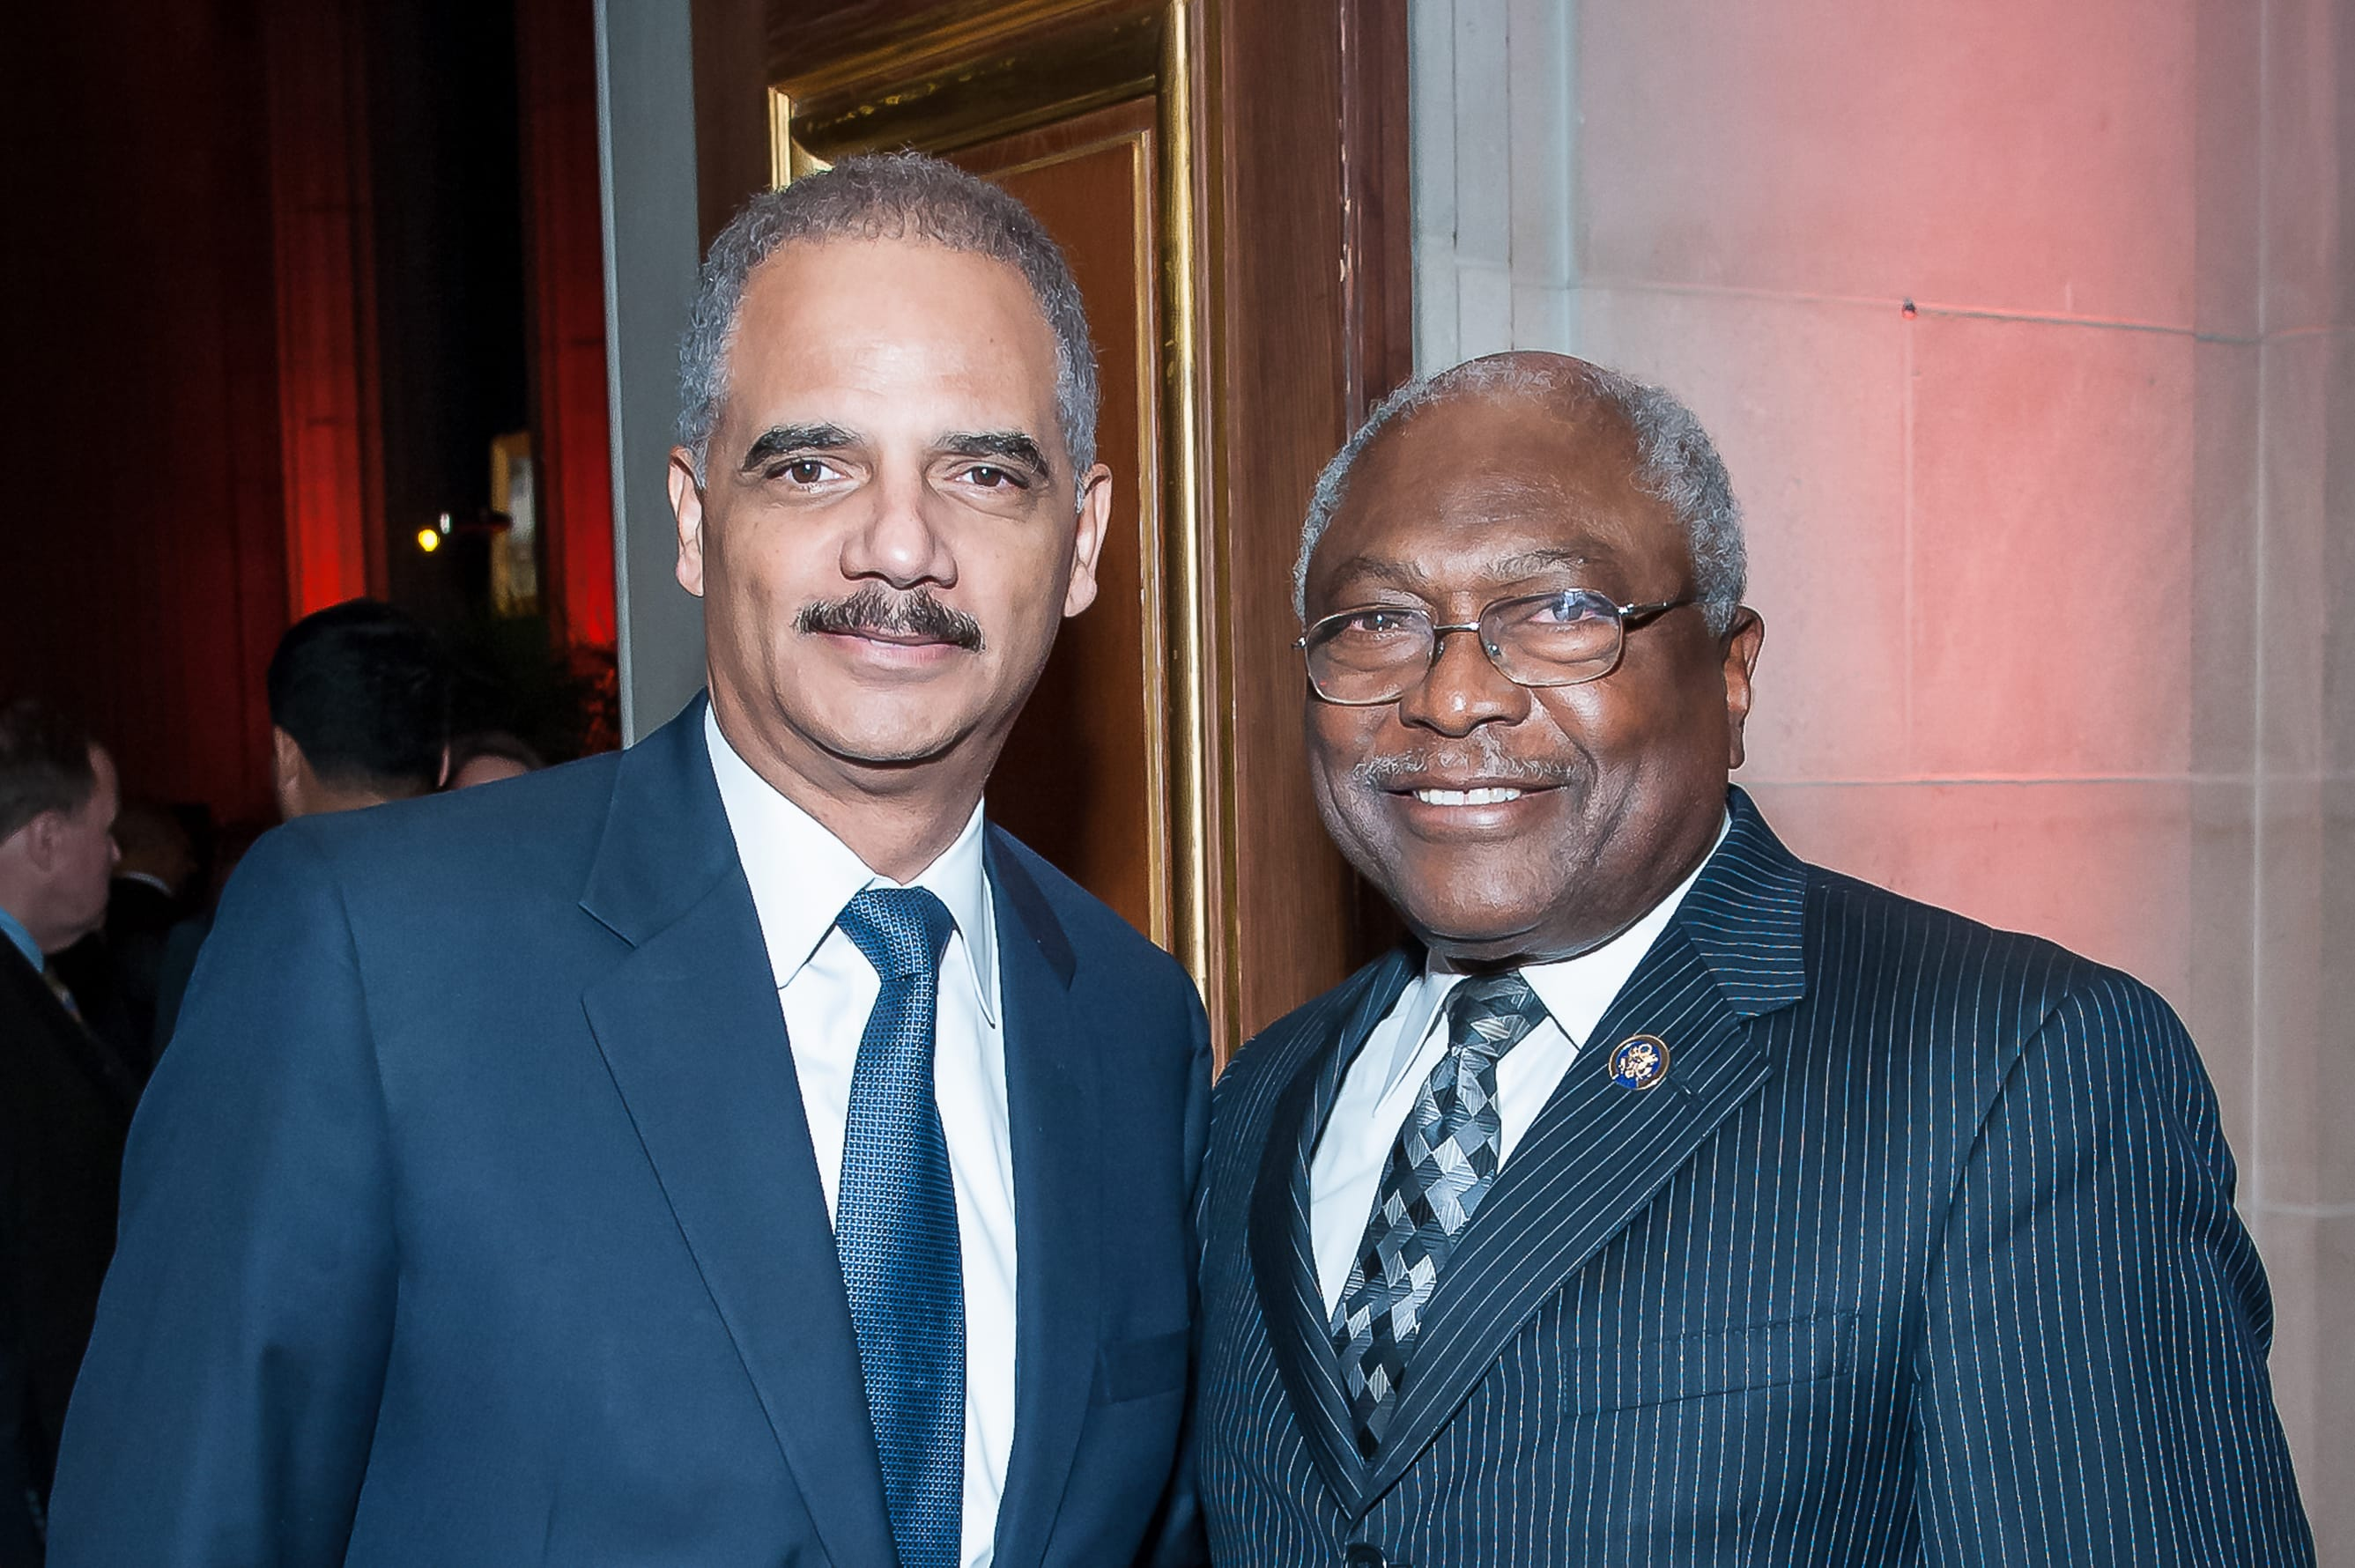 James Clyburn and Eric Holder receive the LBJ Liberty and Justice for All Award